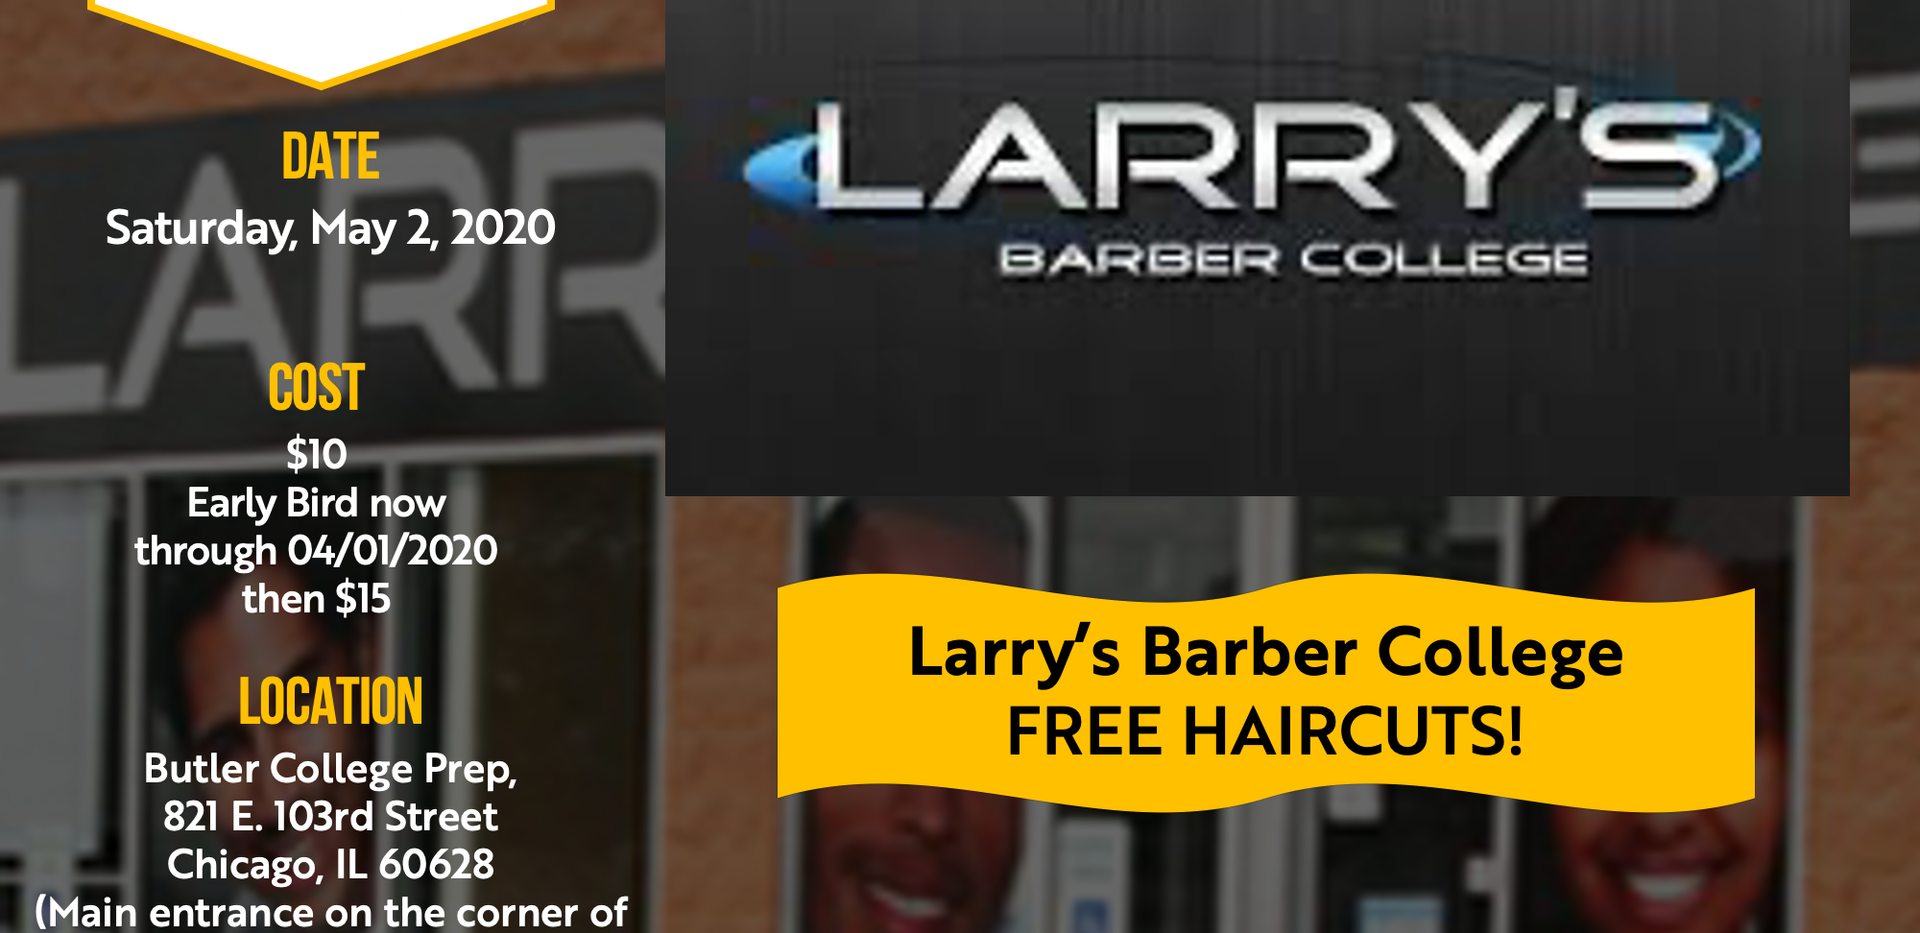 larry's barber college.png